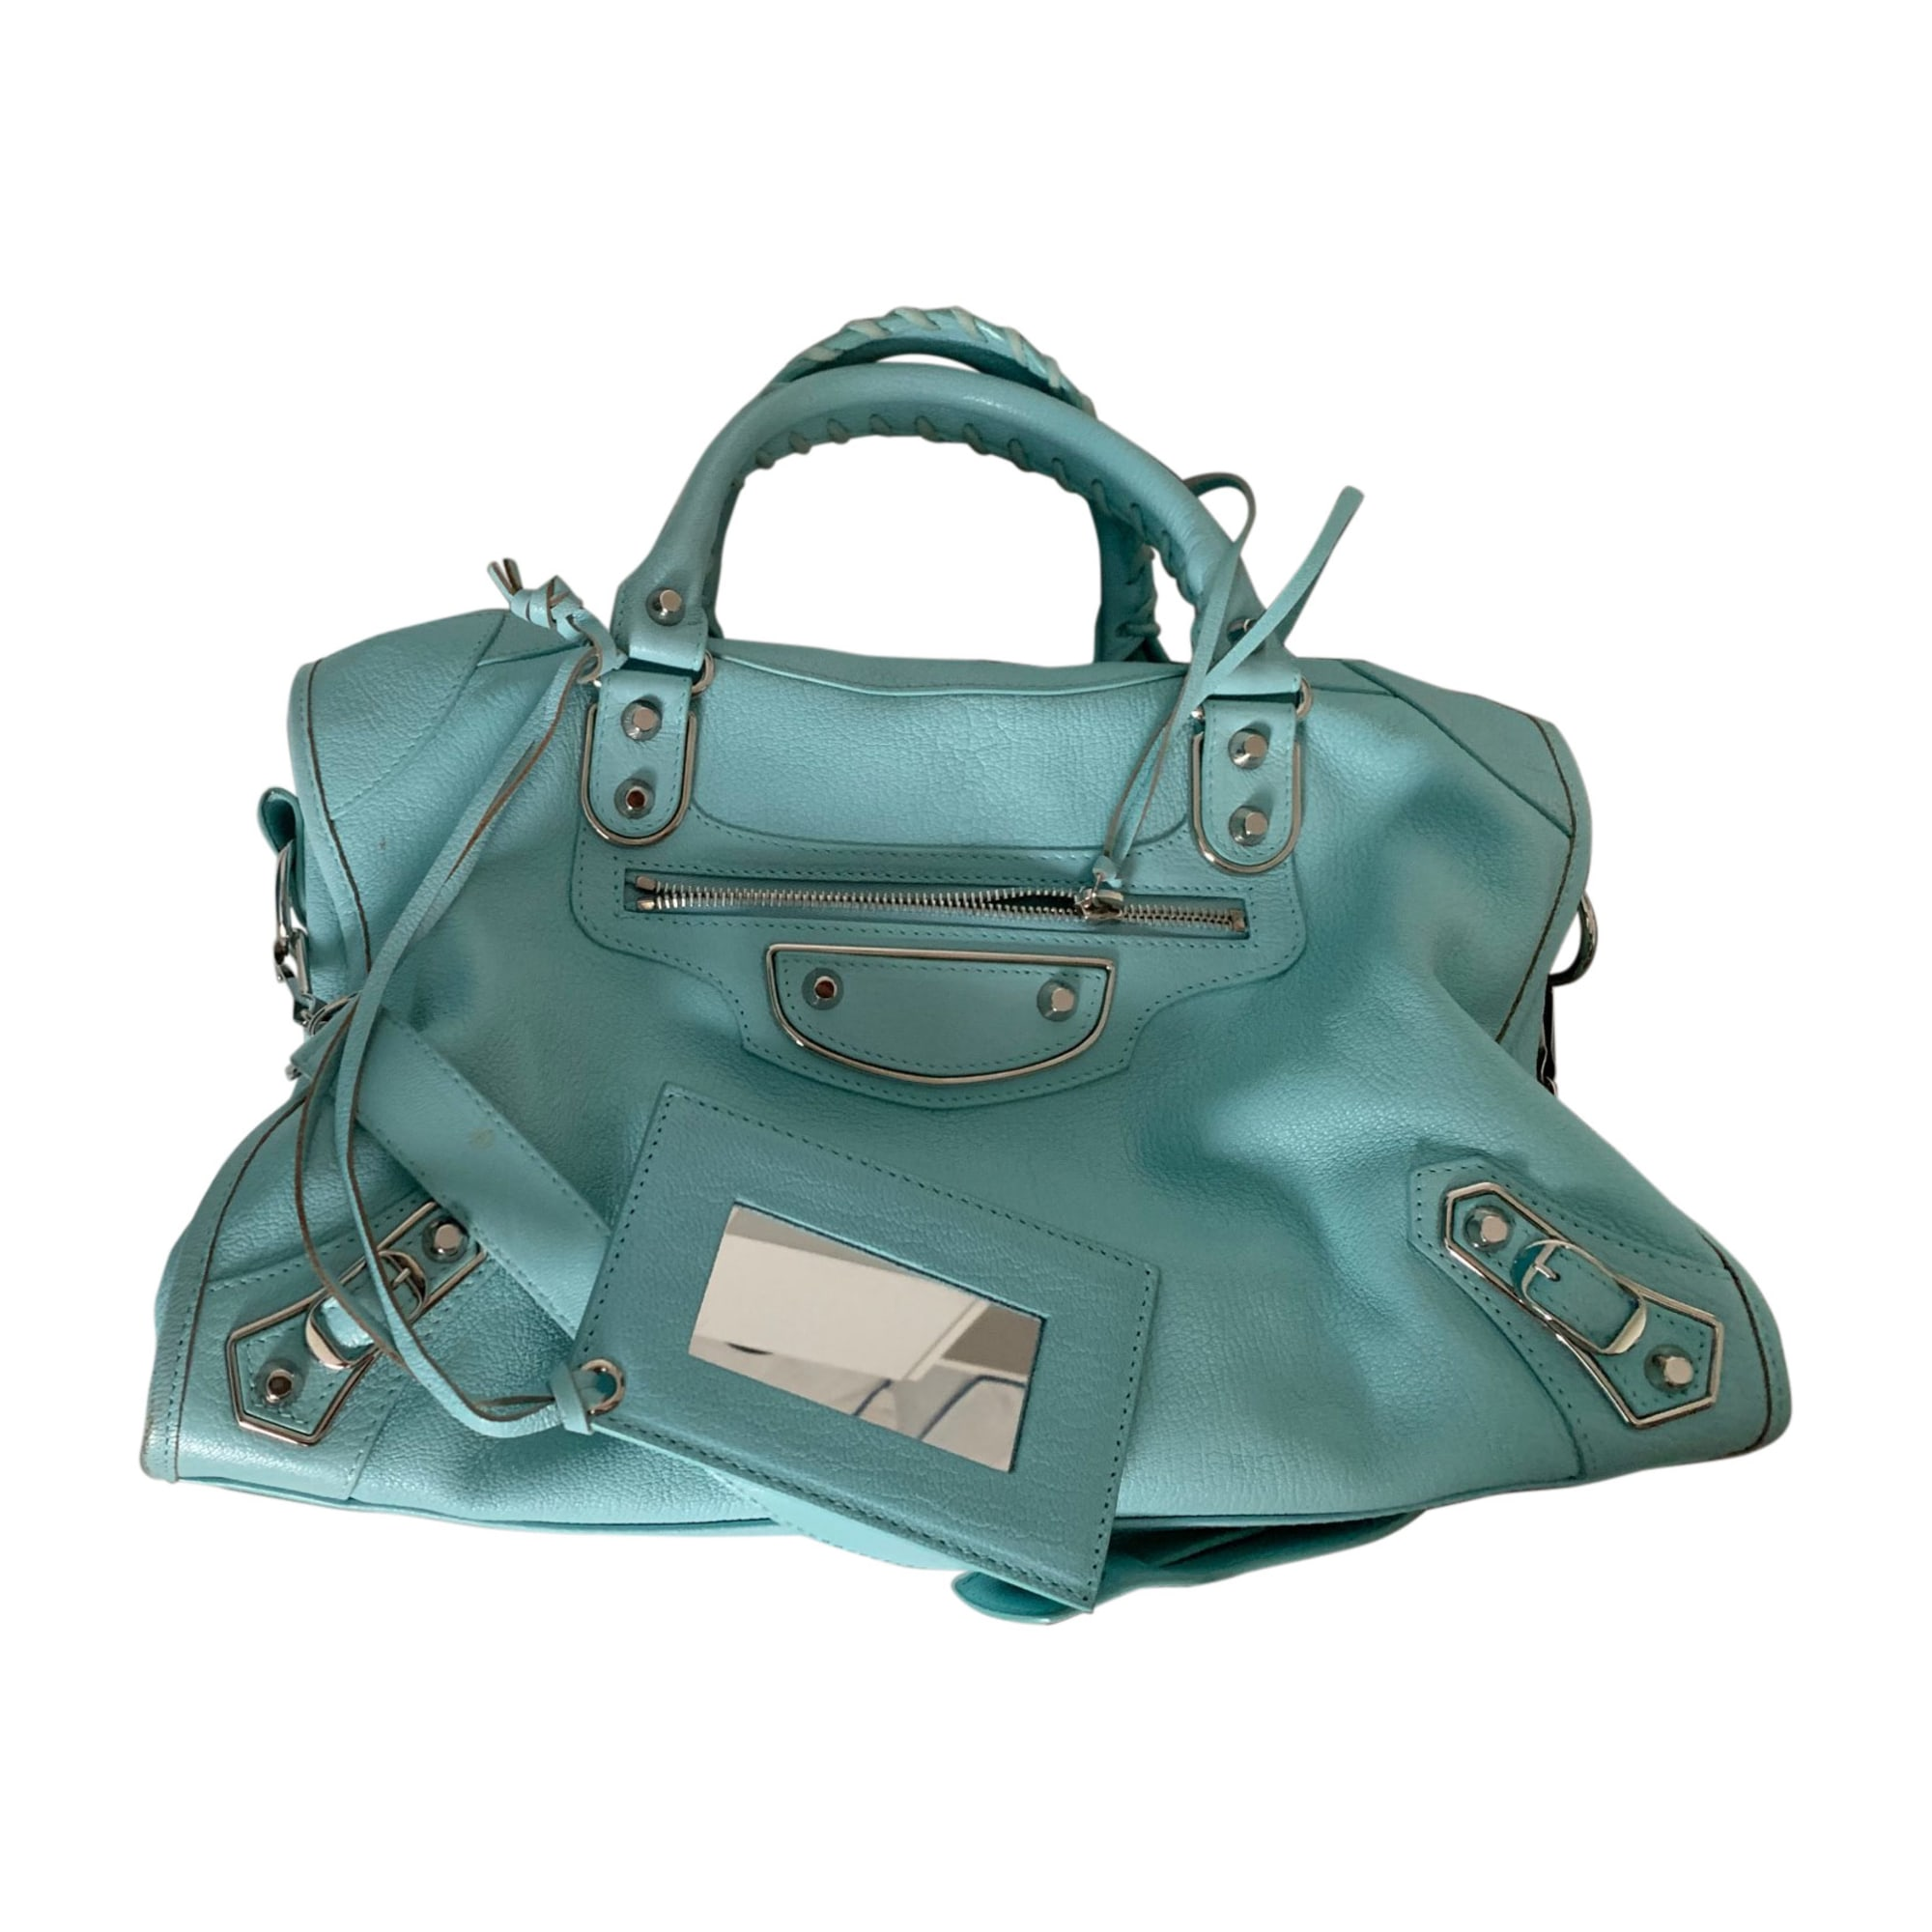 Leather Shoulder Bag BALENCIAGA City Blue, navy, turquoise